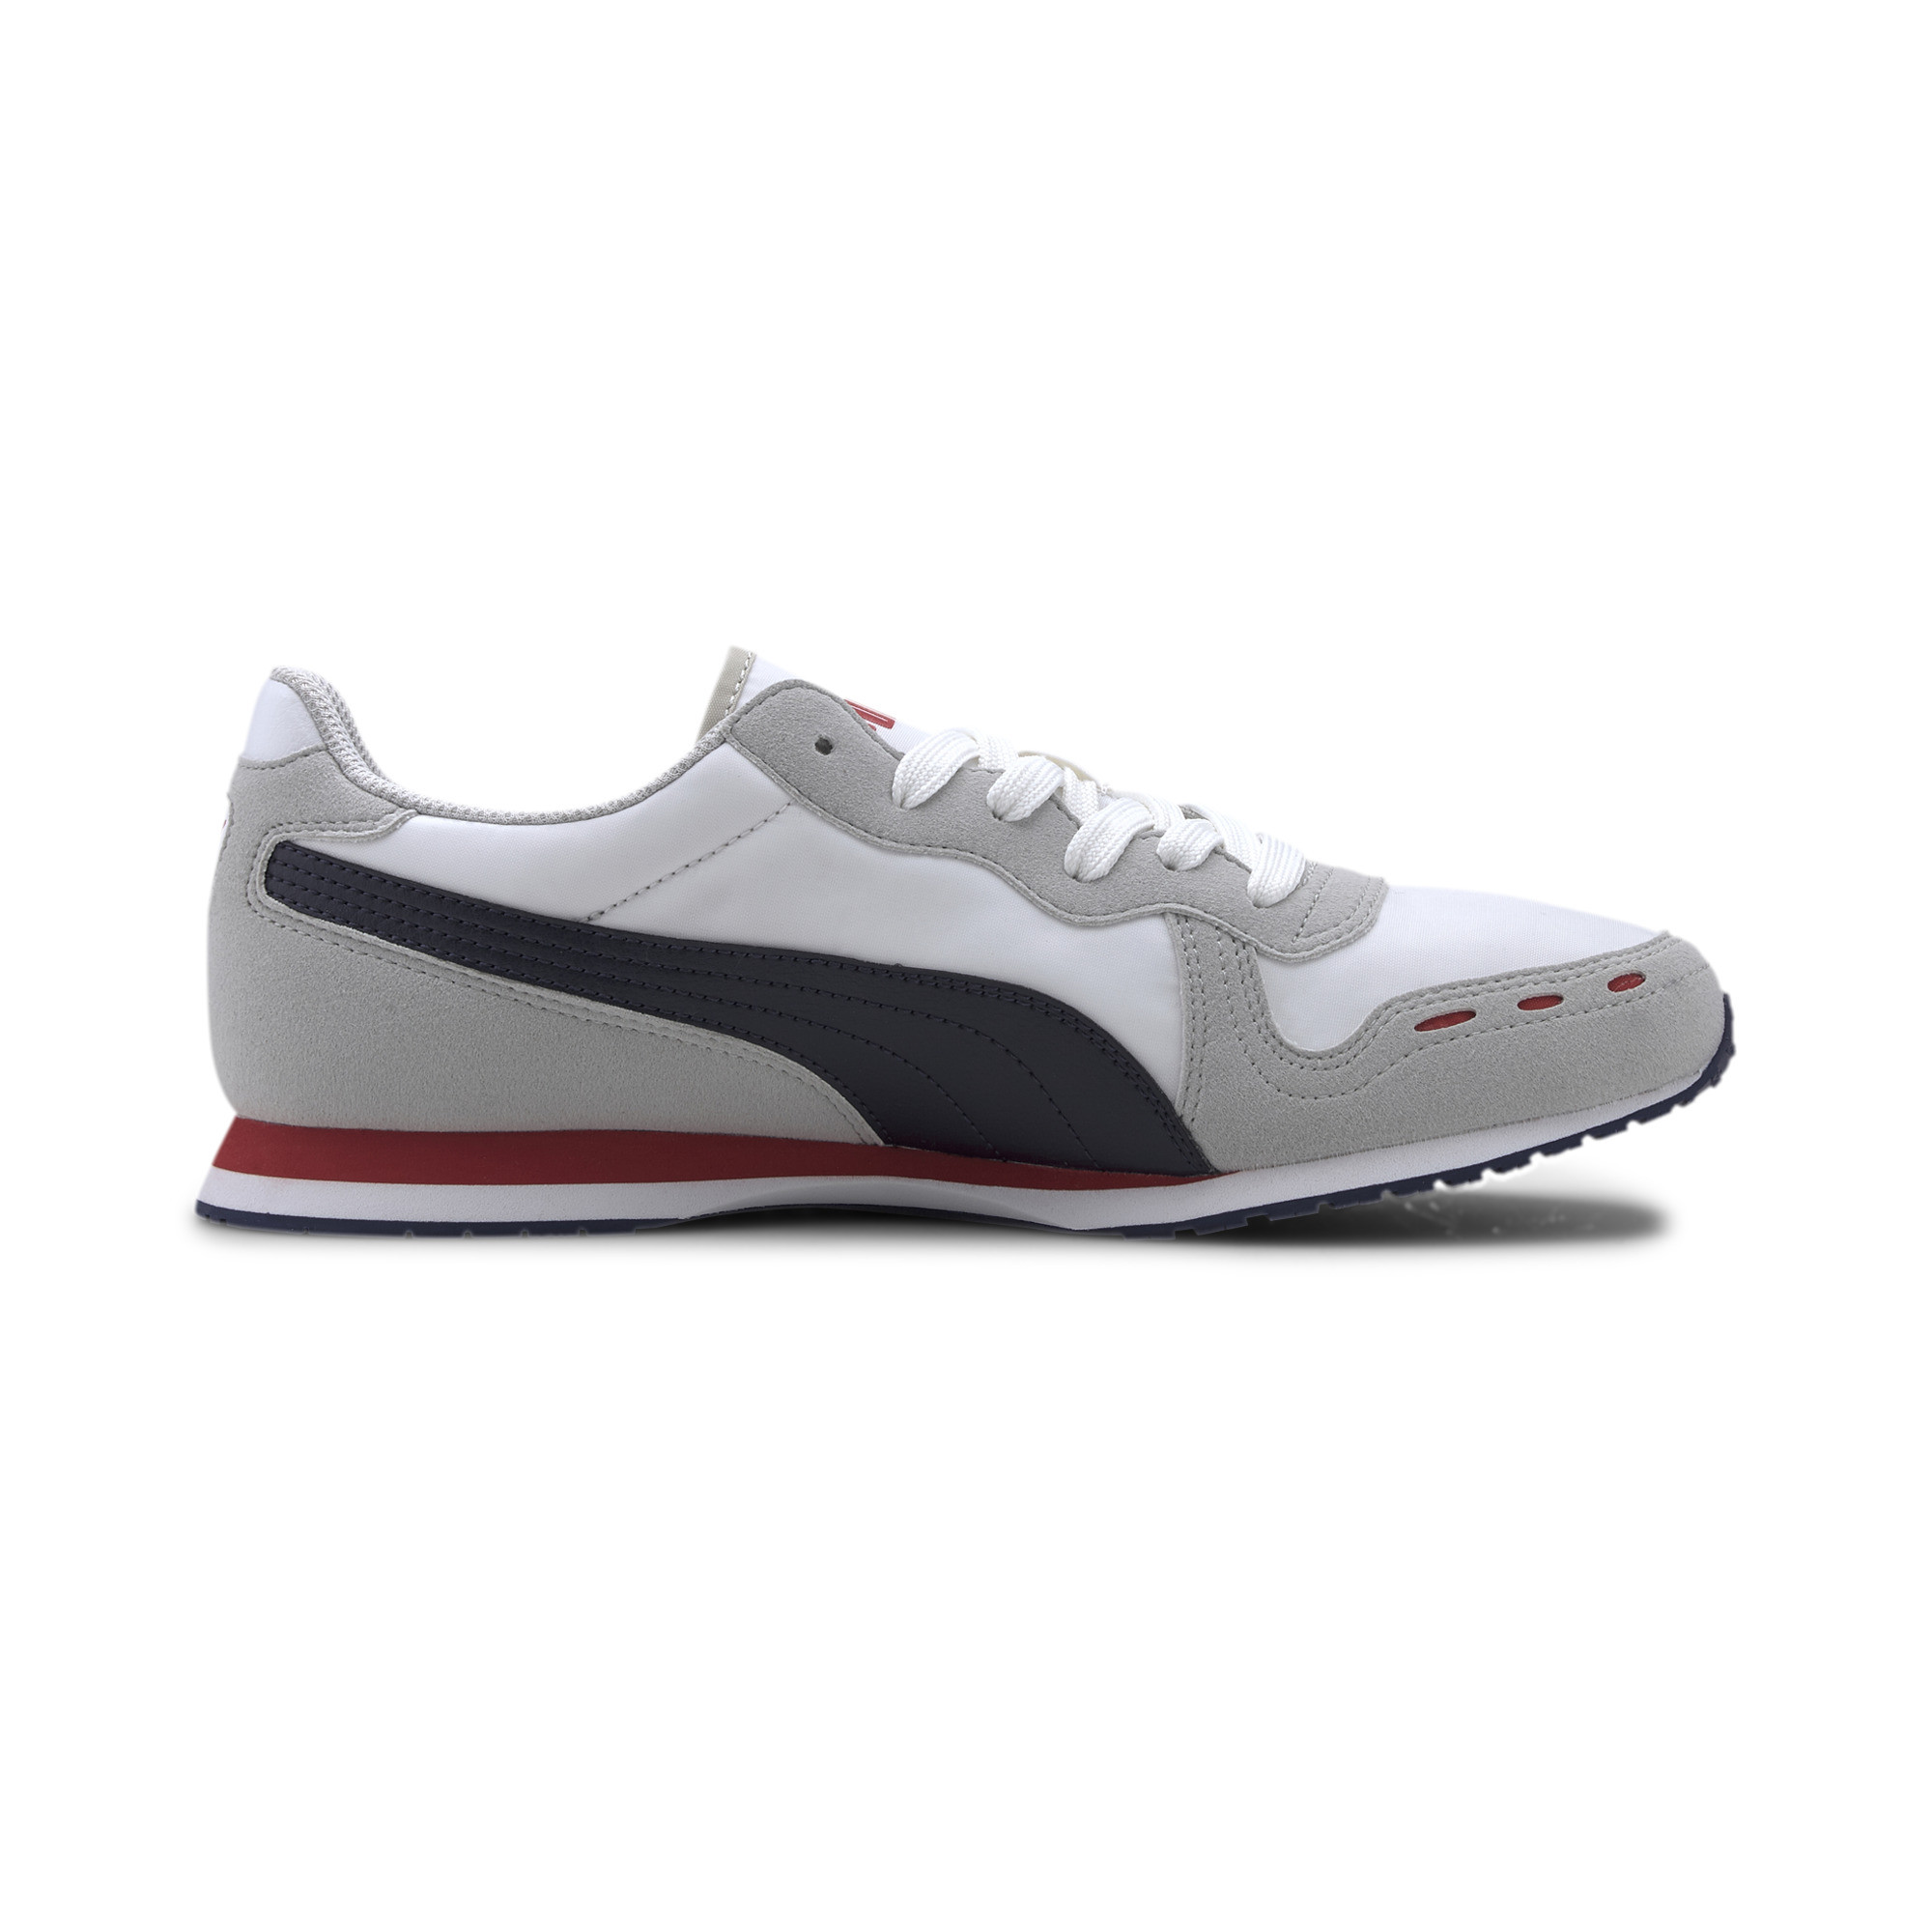 PUMA-Men-039-s-Cabana-Run-Sneakers thumbnail 7